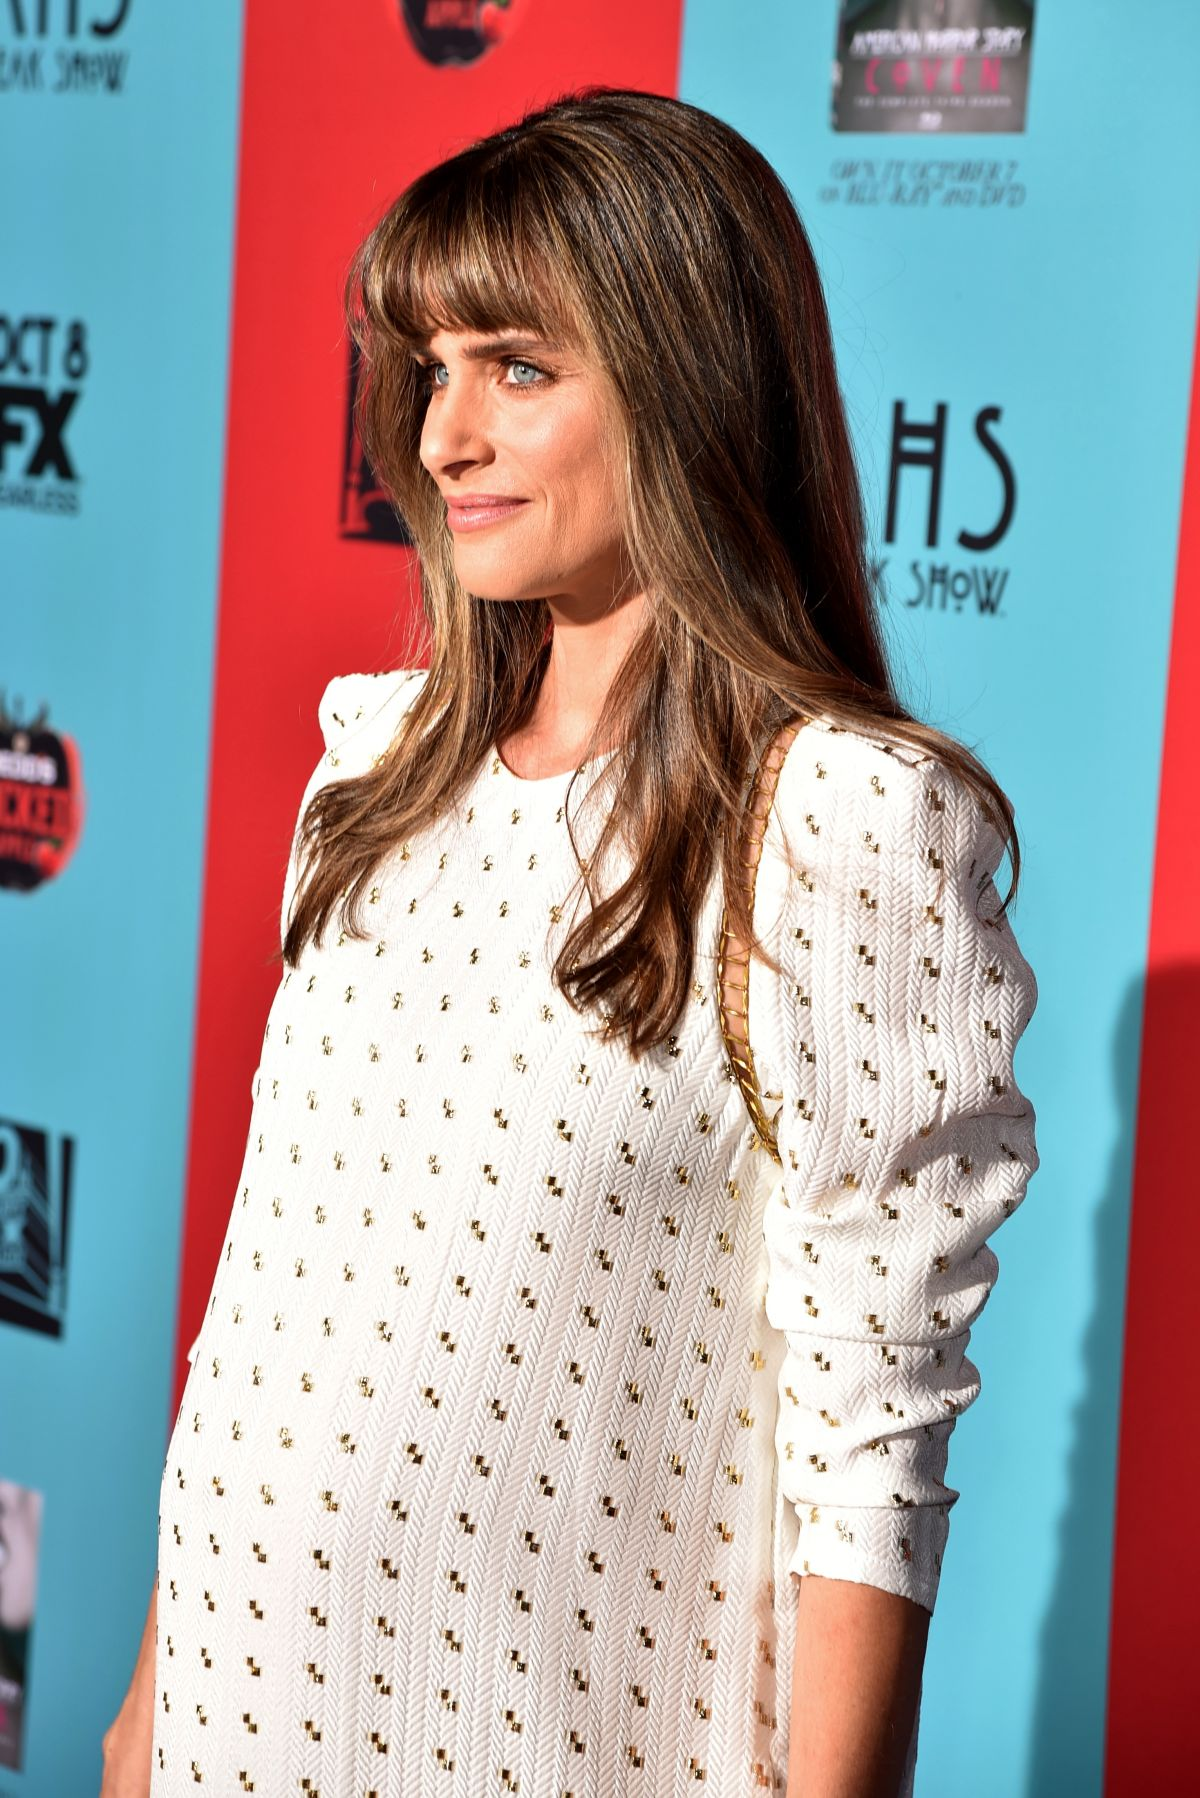 AMANDA PEET at American Horror Story: Freak Show Premiere in Hollywood